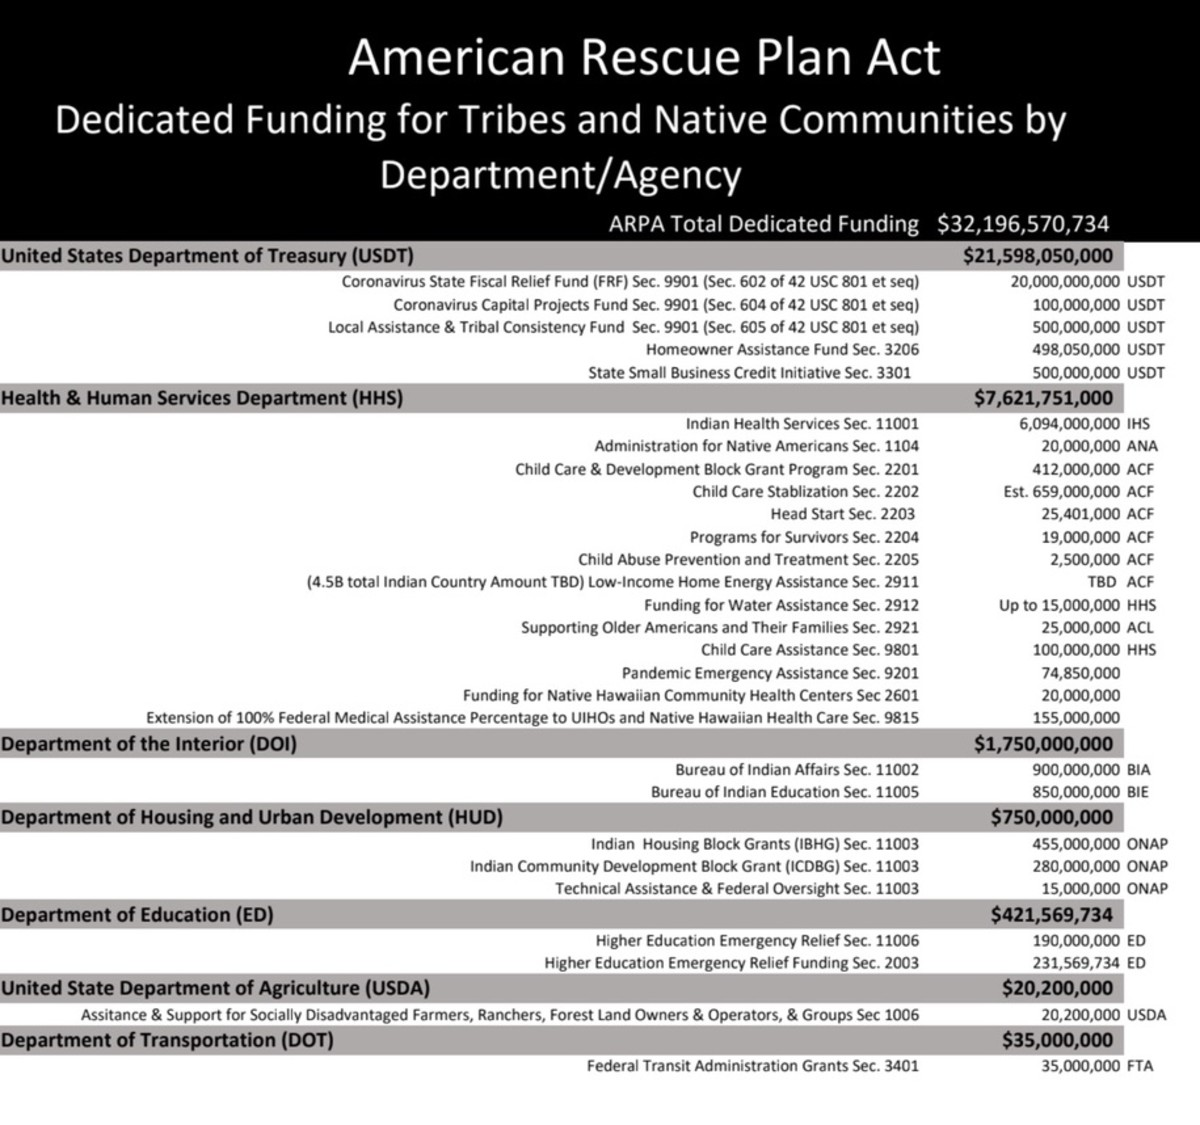 American Rescue Plan Act funding for tribes and Native communities by department/agency (slide courtesy of Harvard Kennedy School Ash Center)